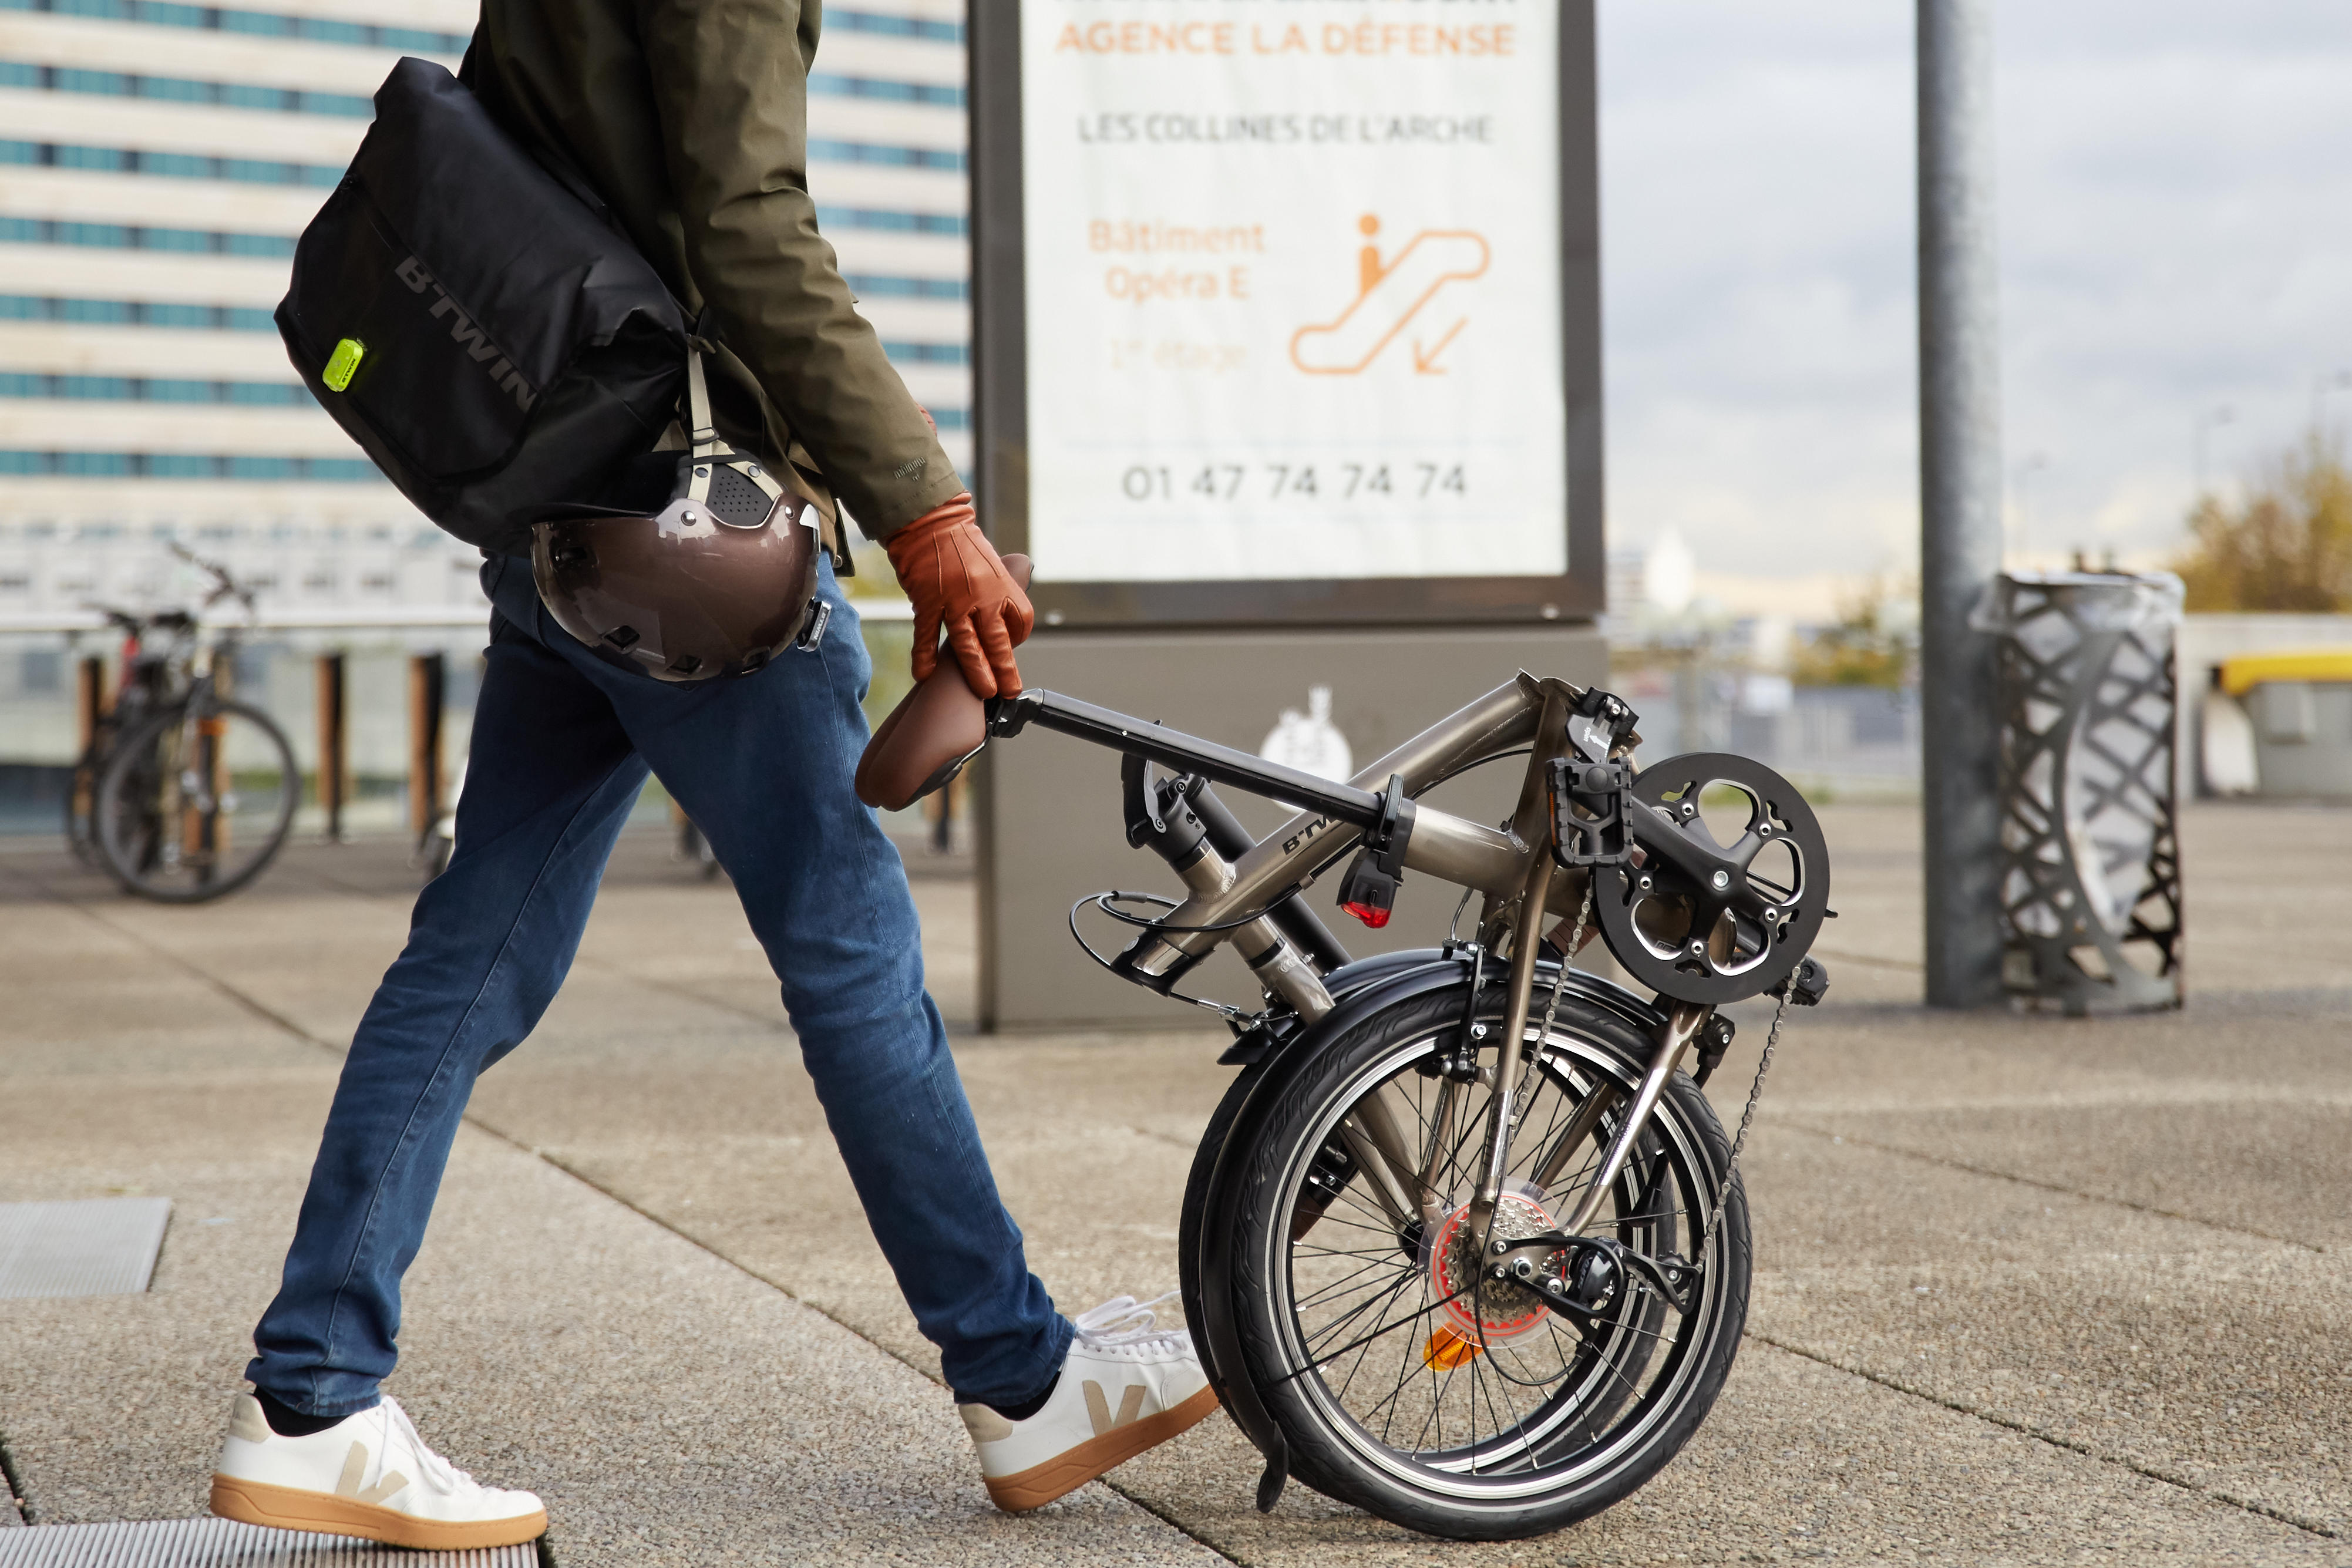 How to fold and unfold folding bike?